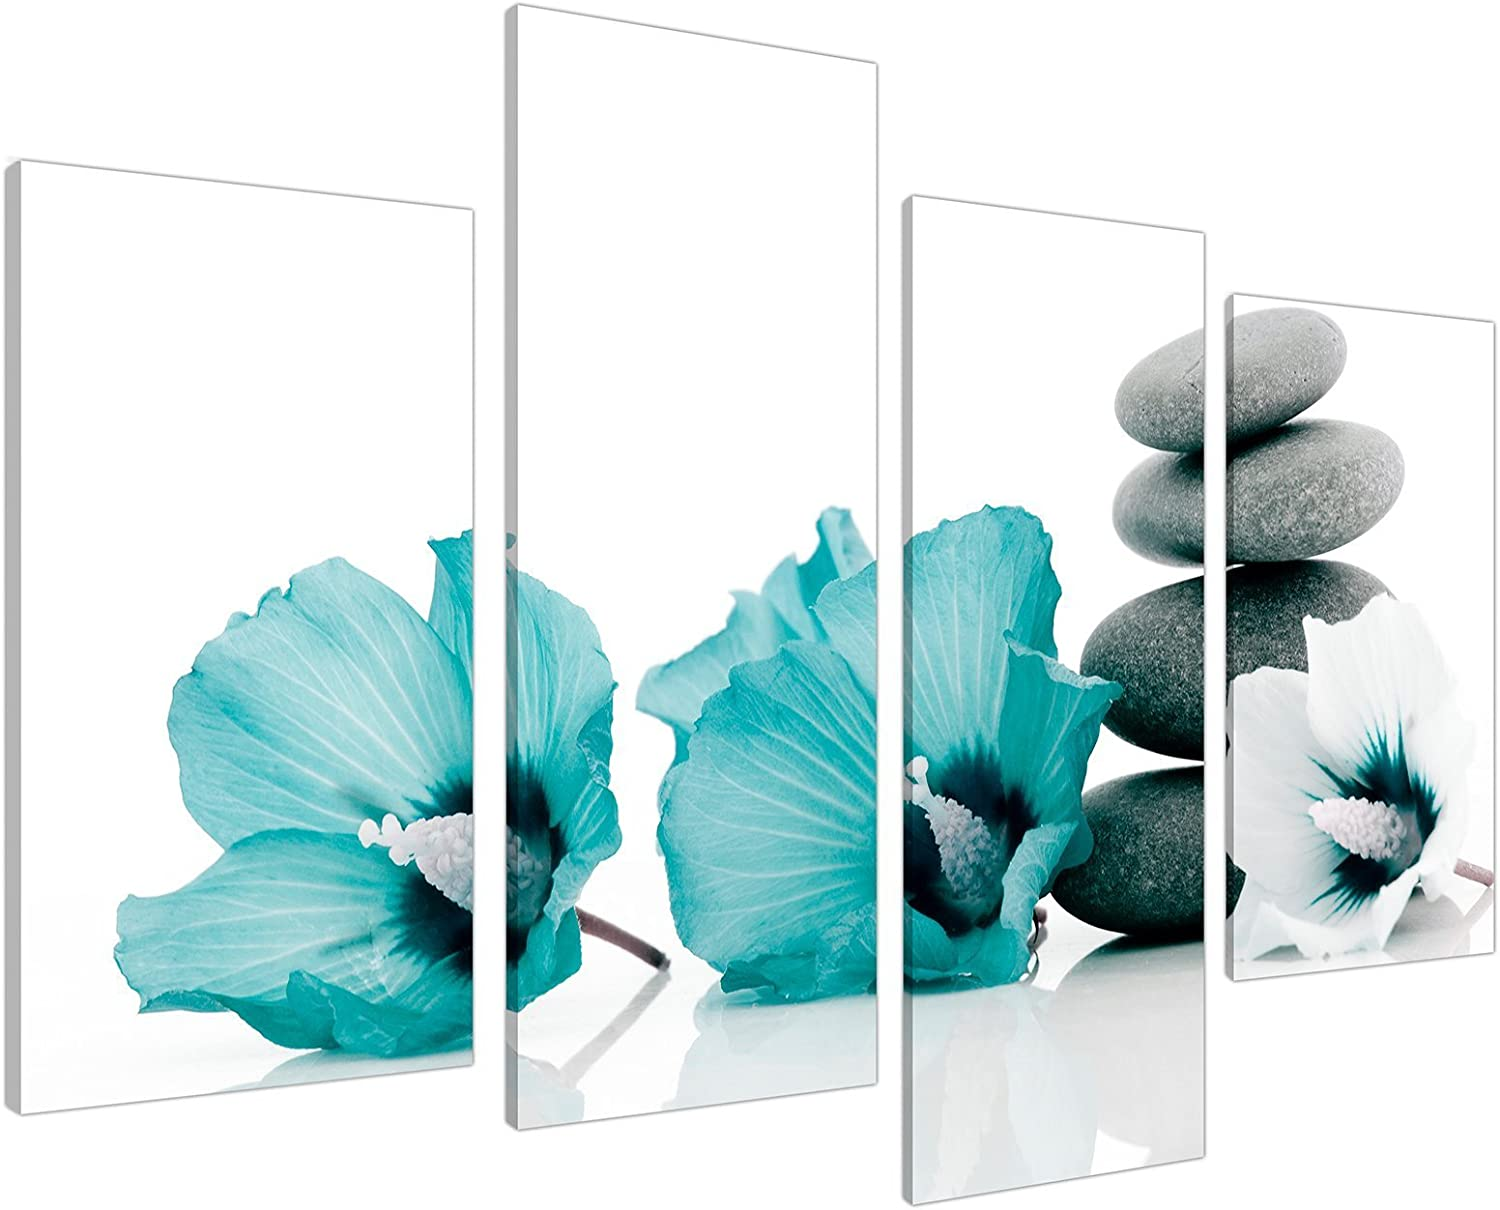 Large Teal Flower Floral Canvas Wall Art Pictures 130cm Set XL 4072 by Wallfillers